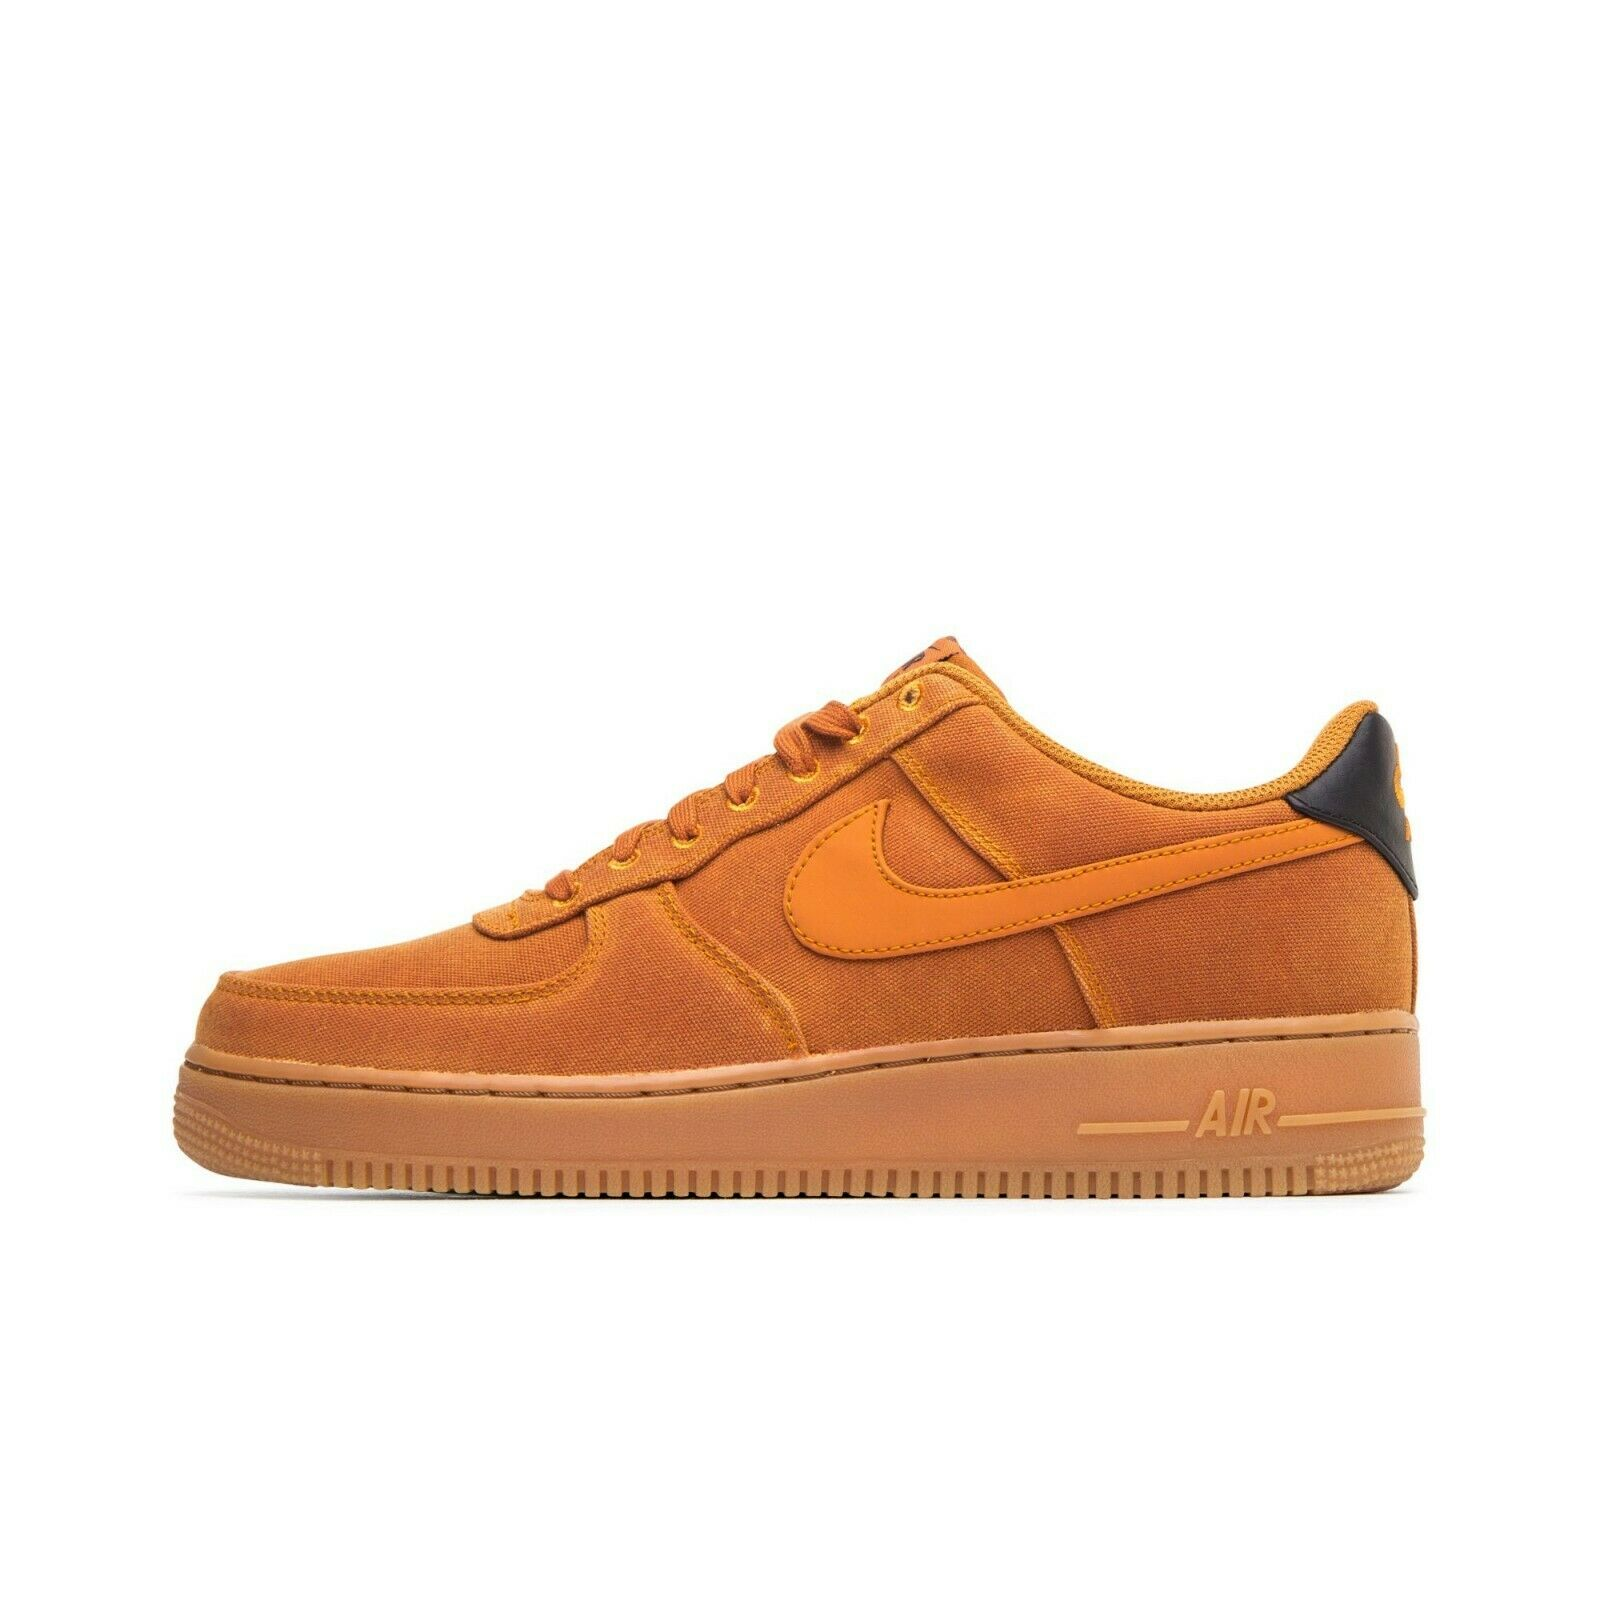 SCARPE SNEAKERS UOMO NIKE ORIGINAL AIR FORCE 1 '07 LV8 STYLE AQ0117 P/E 2019 NEW